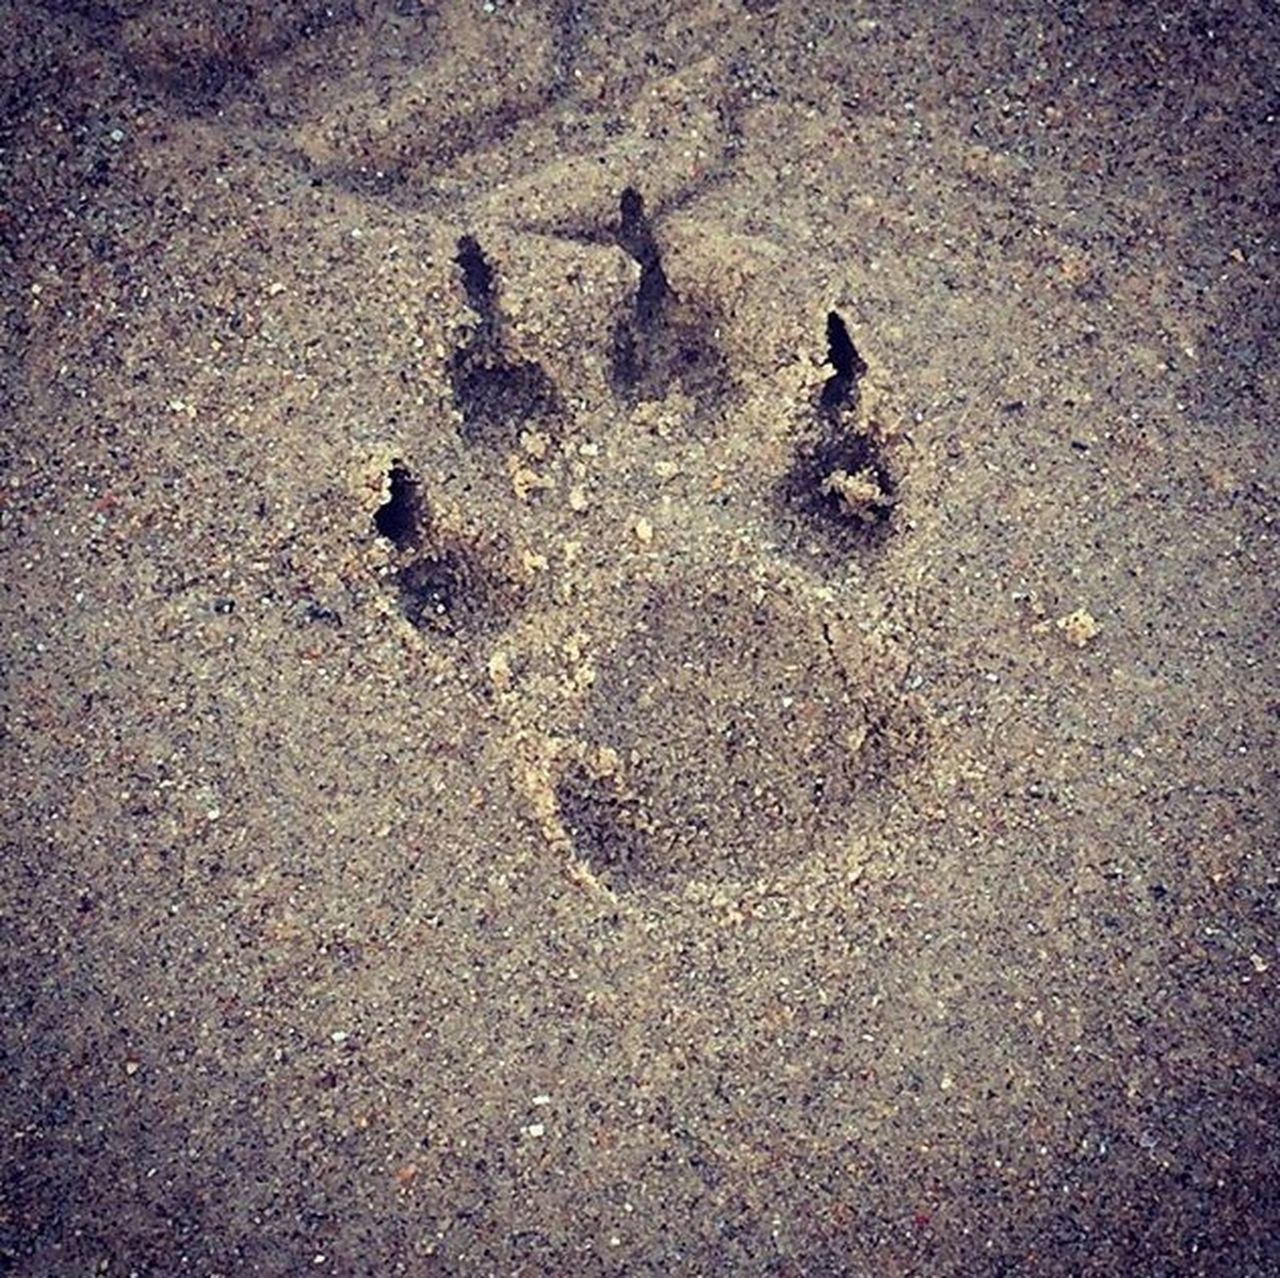 paw print, footprint, day, animal track, outdoors, track - imprint, no people, high angle view, sand, beach, nature, close-up